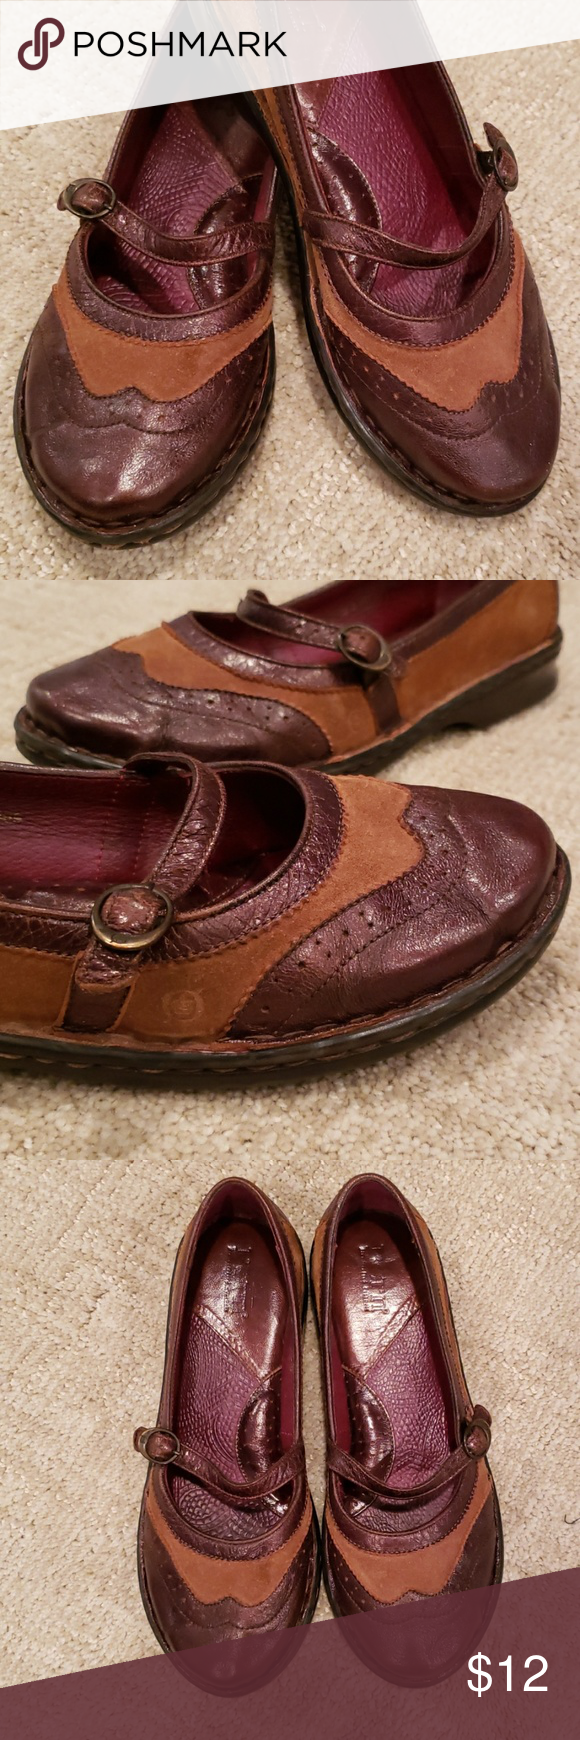 e0a1d4eac Born Brogue Mary Janes A spiffy pair of shoes from Born. Dark brown leather  with